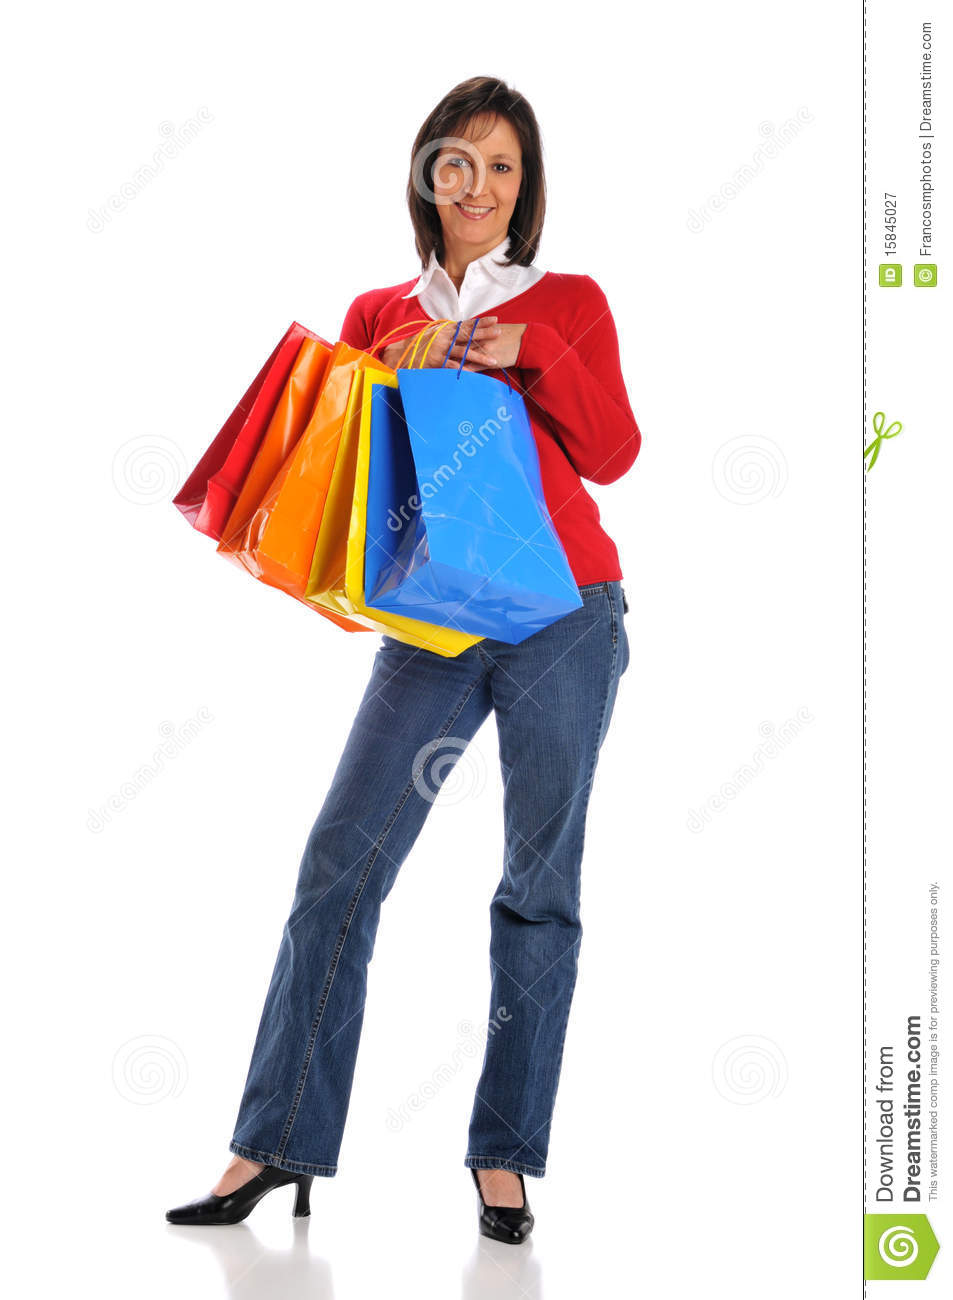 Popular Woman Holding Shopping Bags And Travel Suitcase Stock Photo - Image 52255868